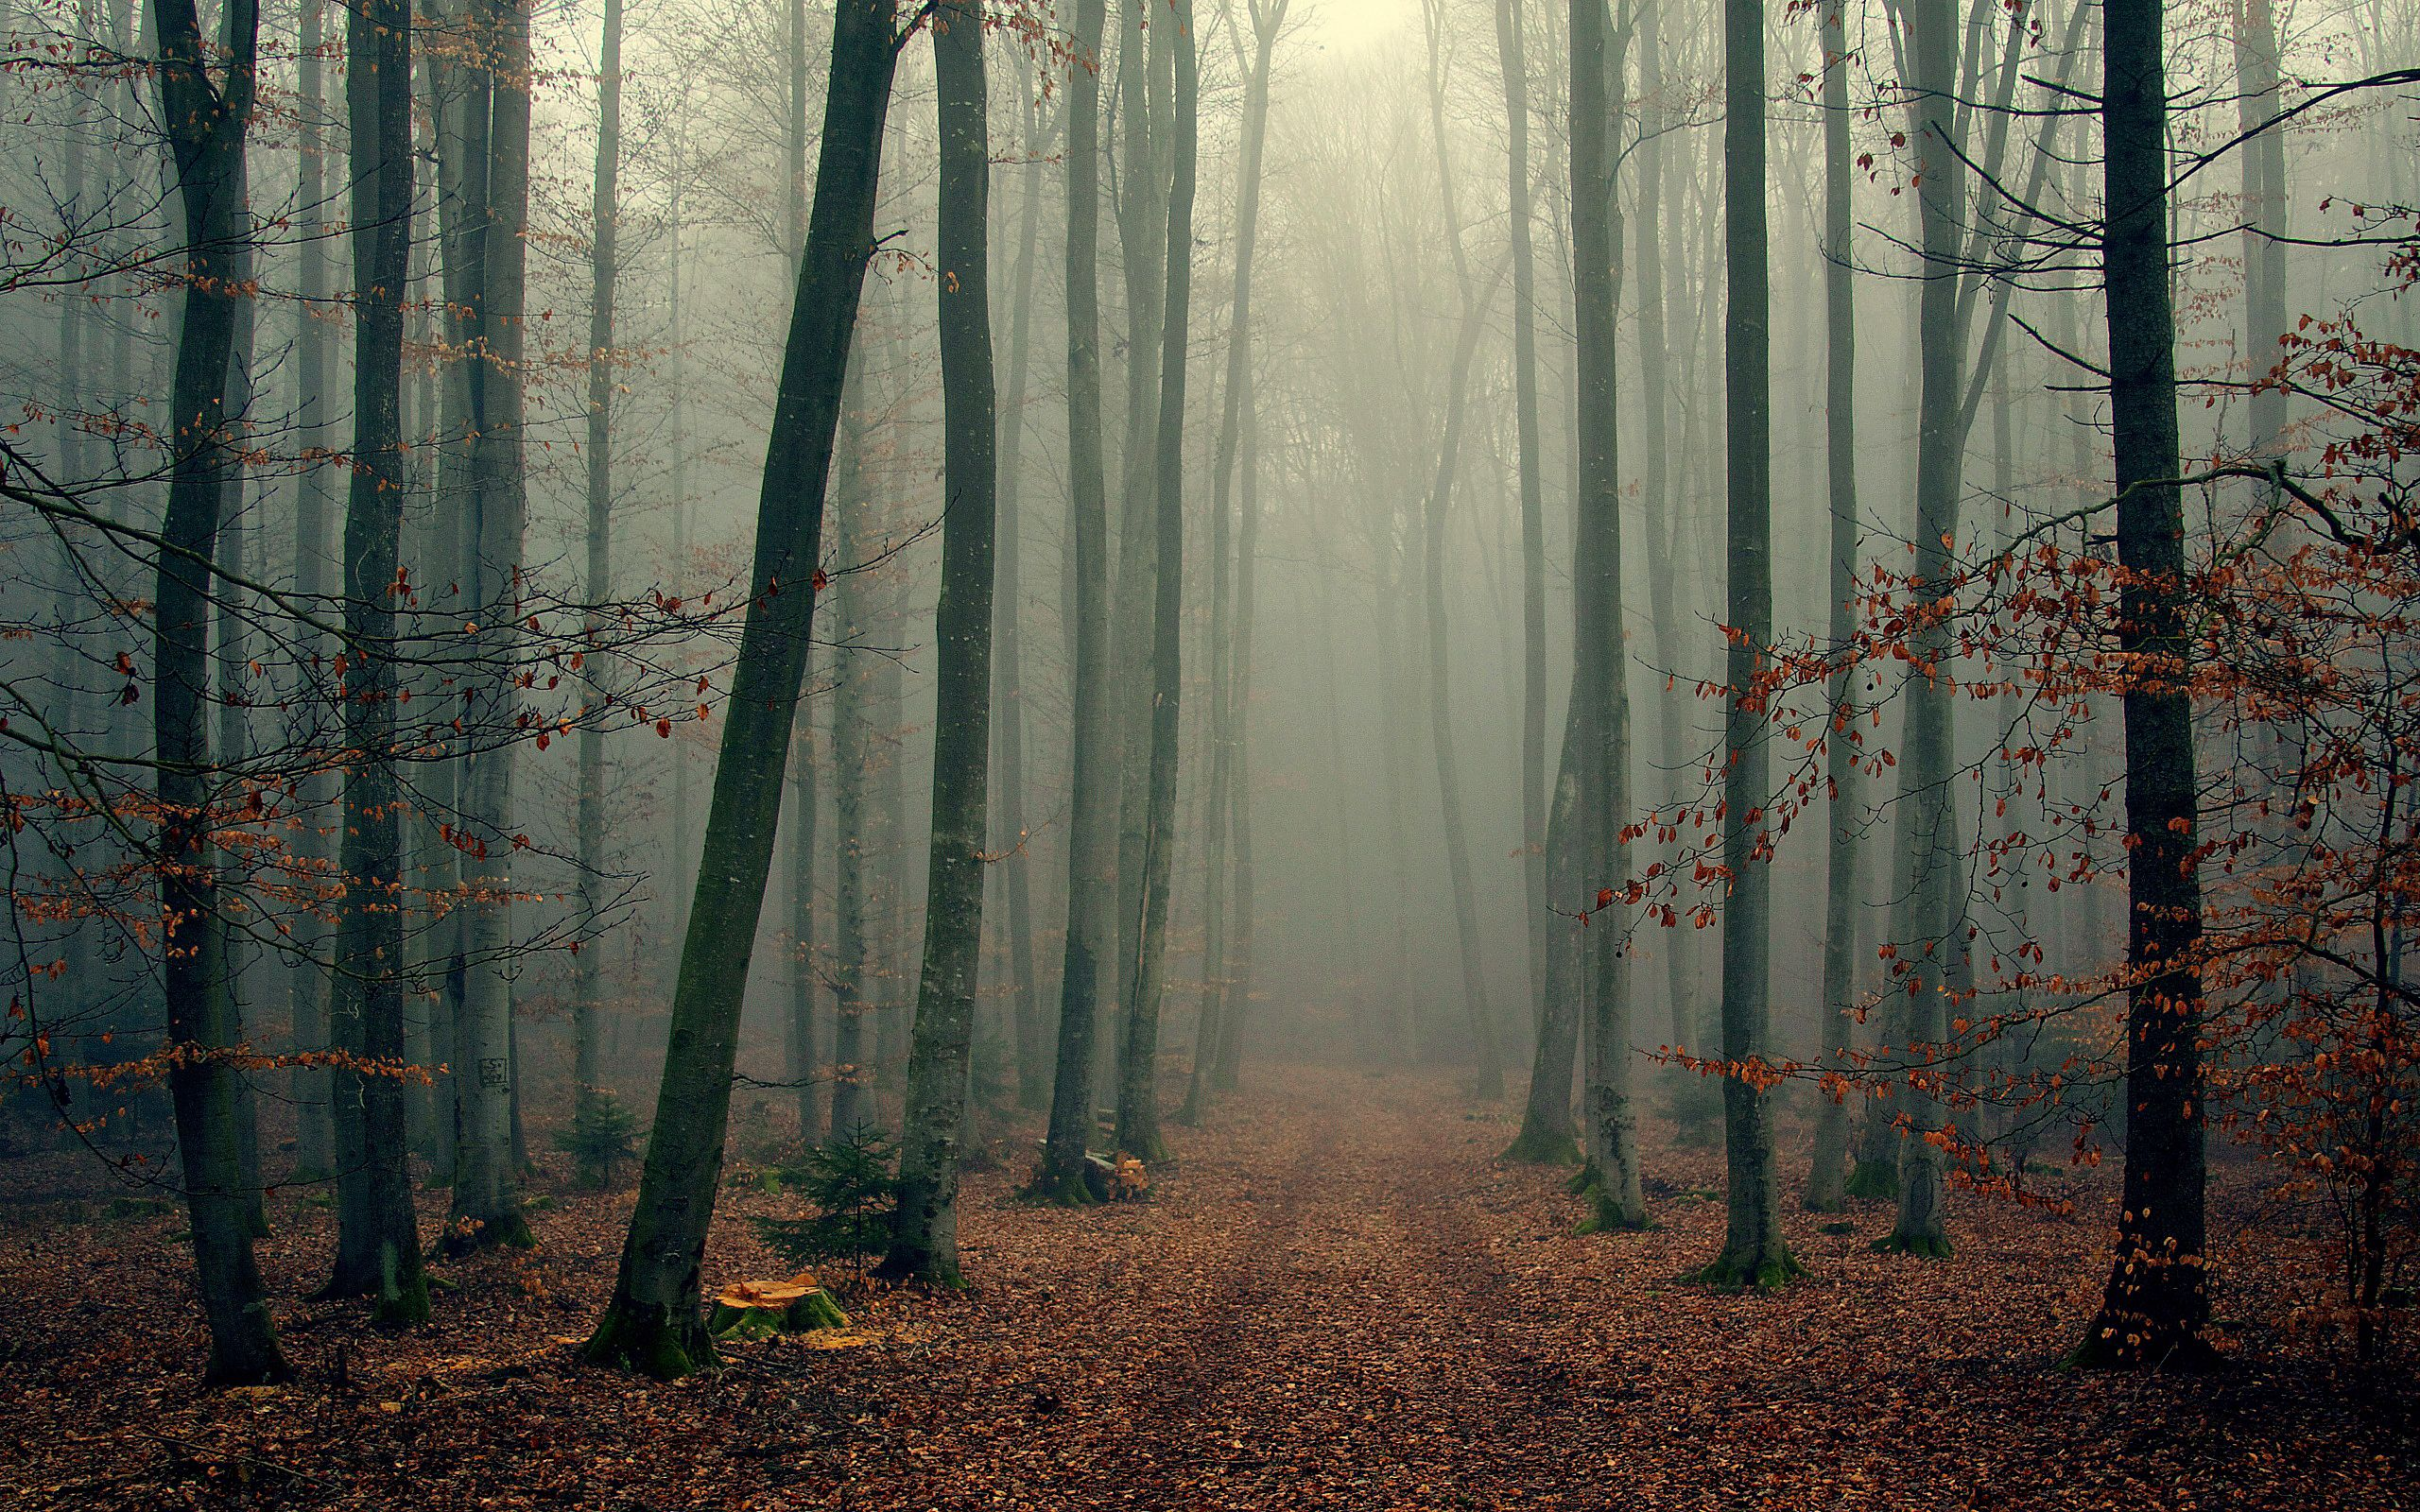 94435 download wallpaper Nature, Trees, Autumn, Forest, Fog, Cool, Foliage, Coolness screensavers and pictures for free